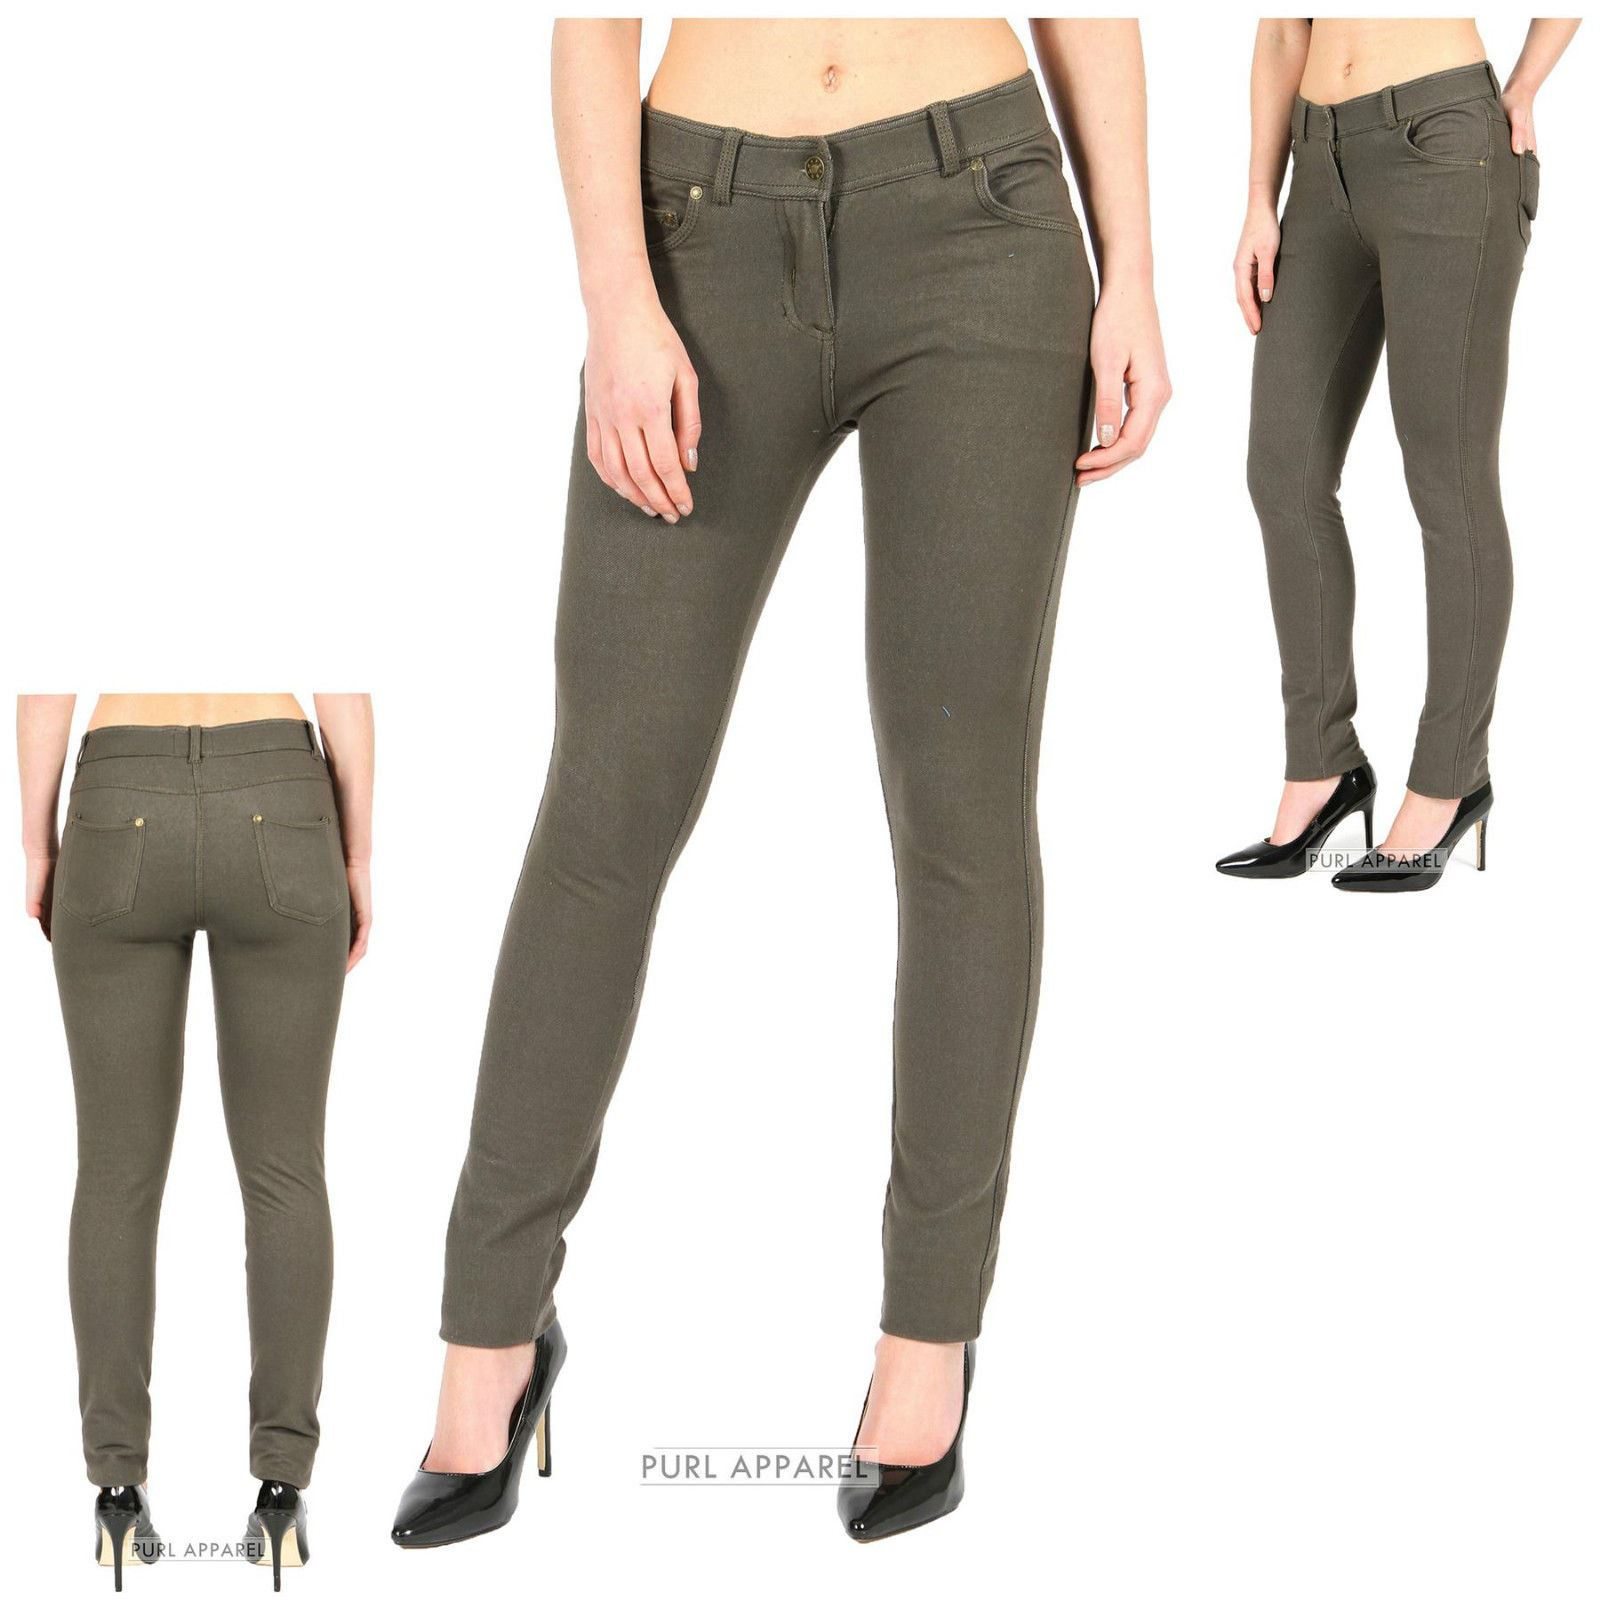 The printed jeggings and zip jeggings are the really attractive and are suitable for every occasion. You will find these casual ethnic wears in bright colors such as green, pink, brown, purple, yellow and red to rock during a casual out.